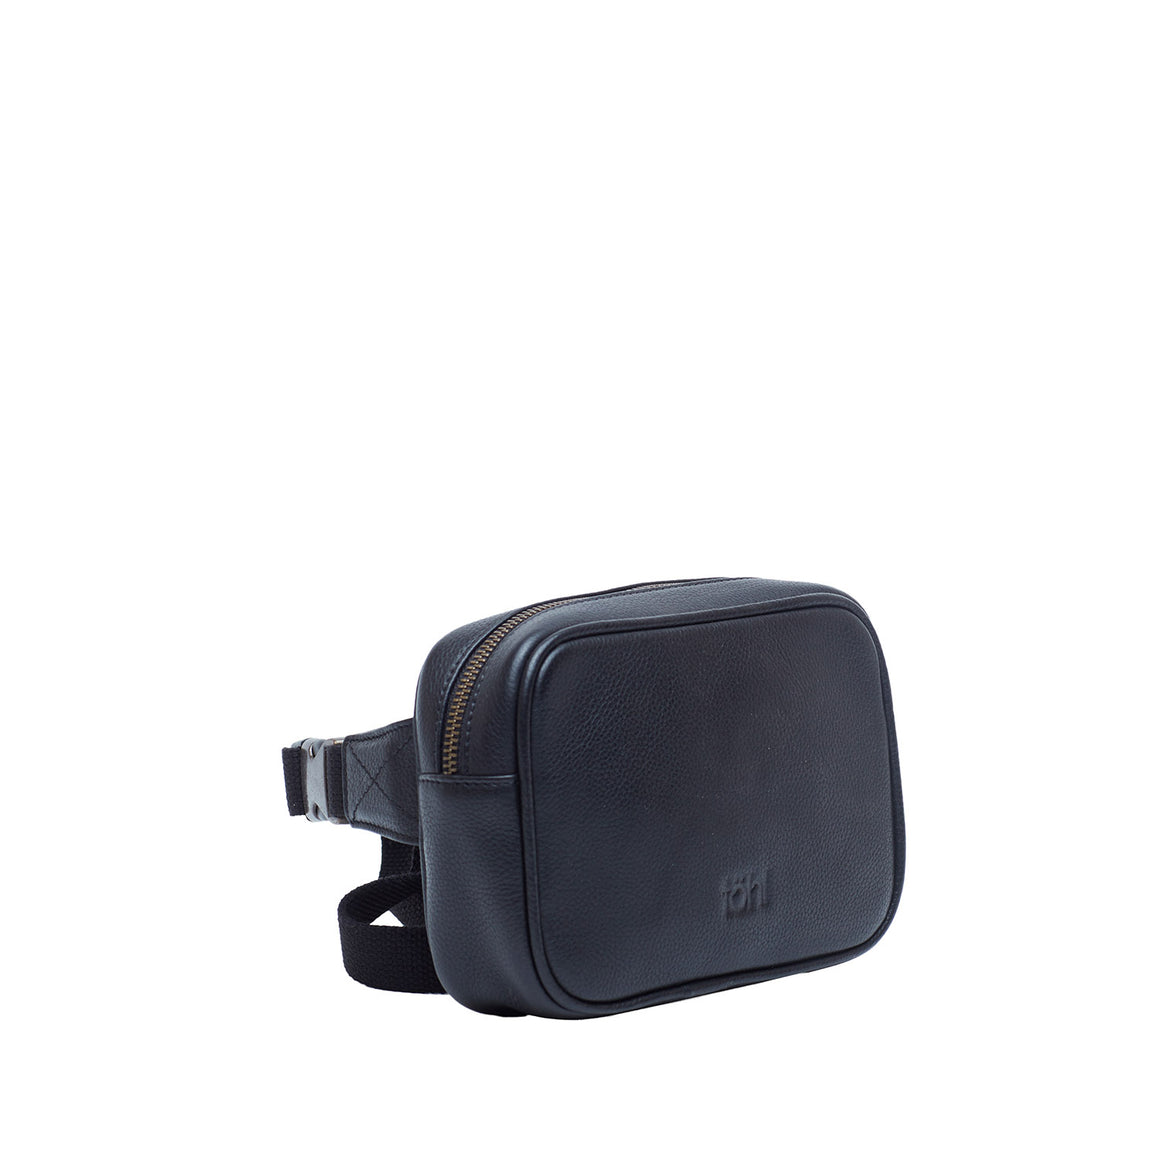 WP 0003 - ABEL MEN'S WAIST POUCHES - CHARCOAL BLACK